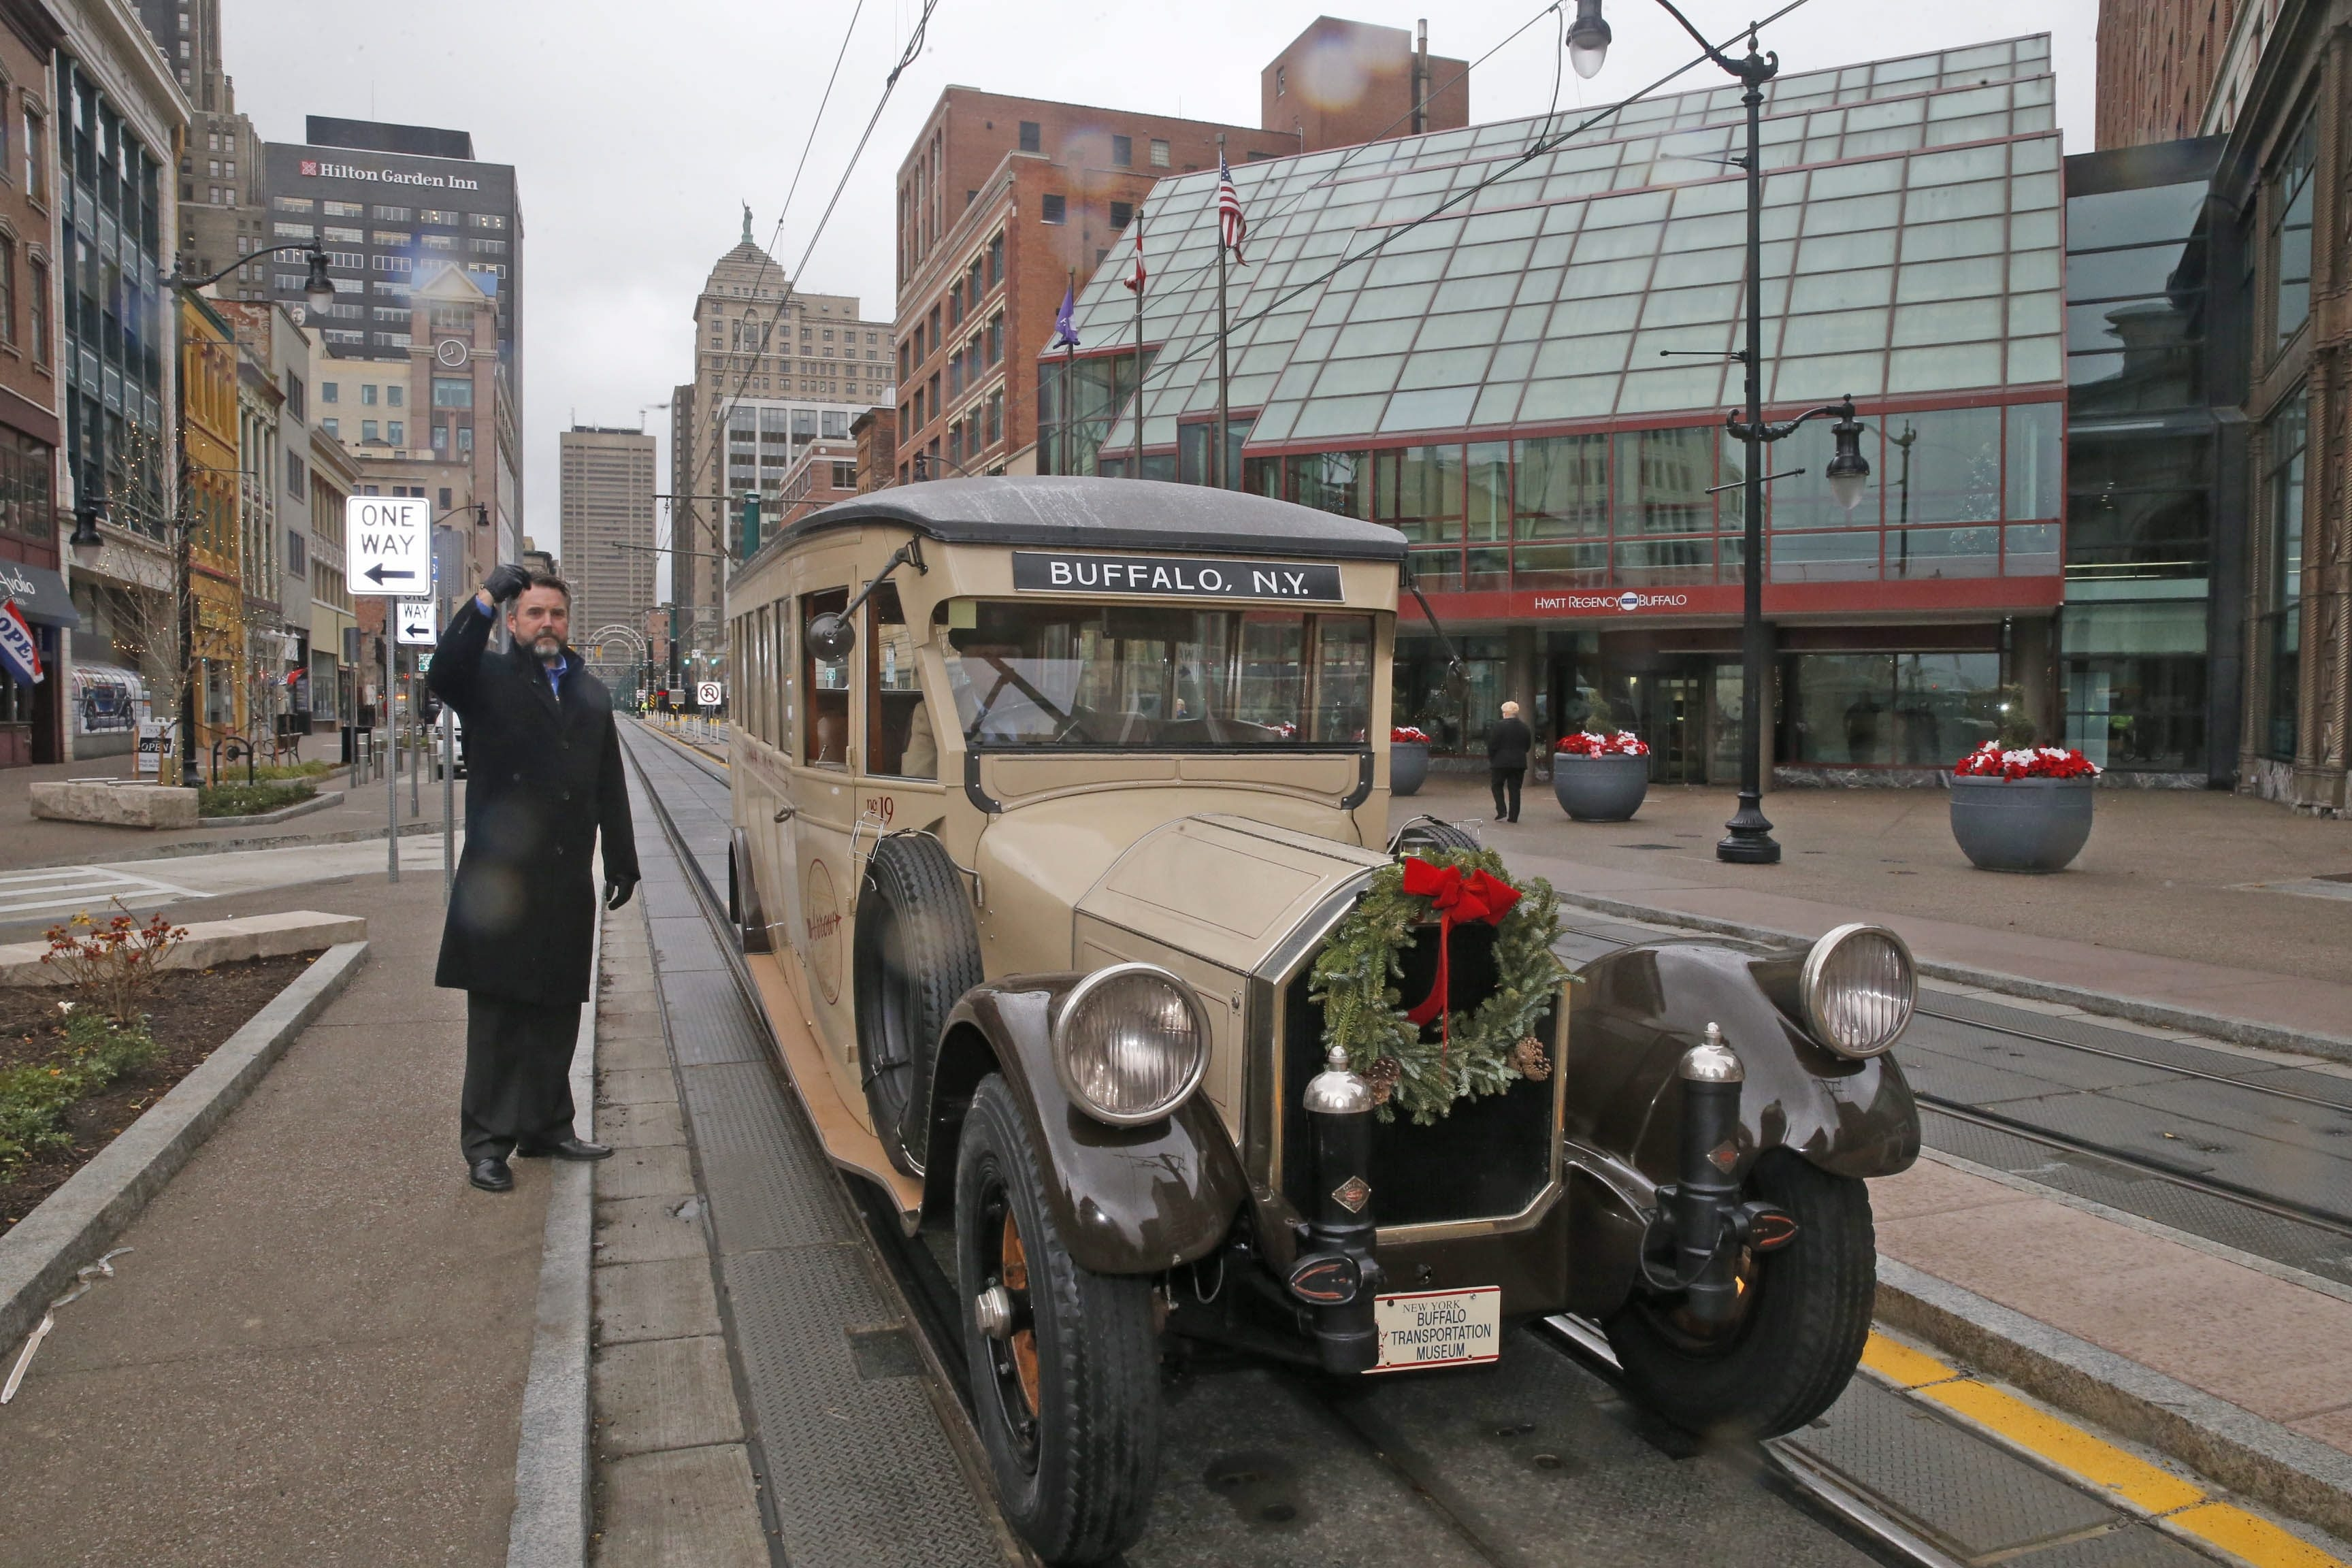 A classic Pierce-Arrow bus was among the first vehicles to drive down the latest reopened section of Main Street on Tuesday.